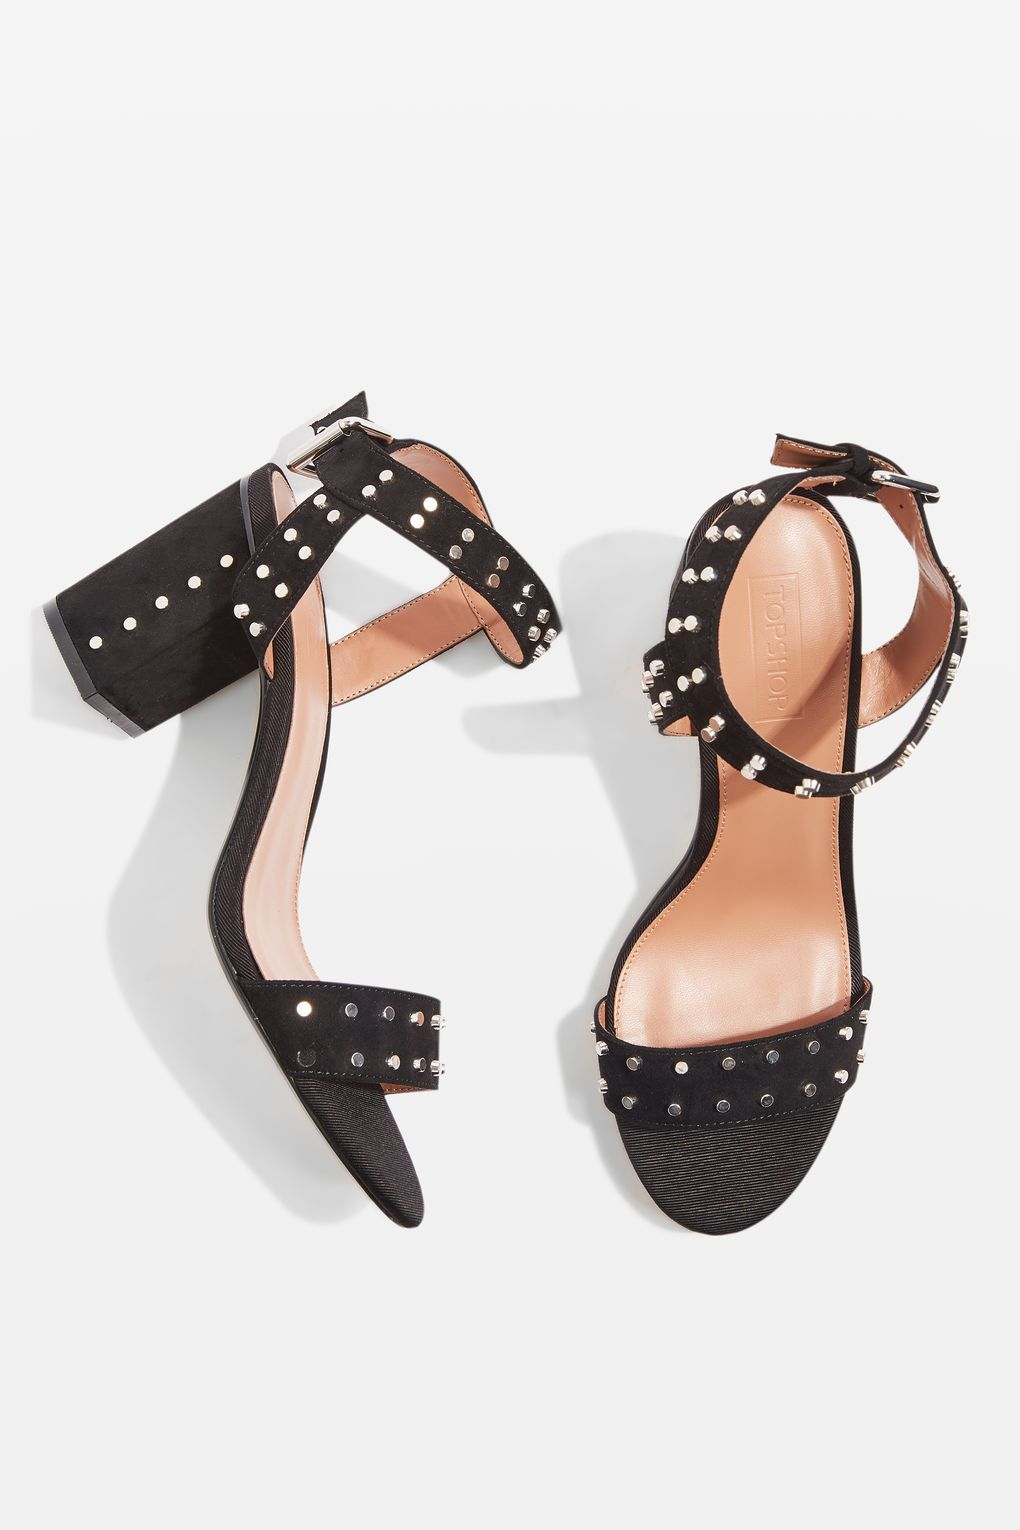 MOROCCO Studded Heeled Sandals